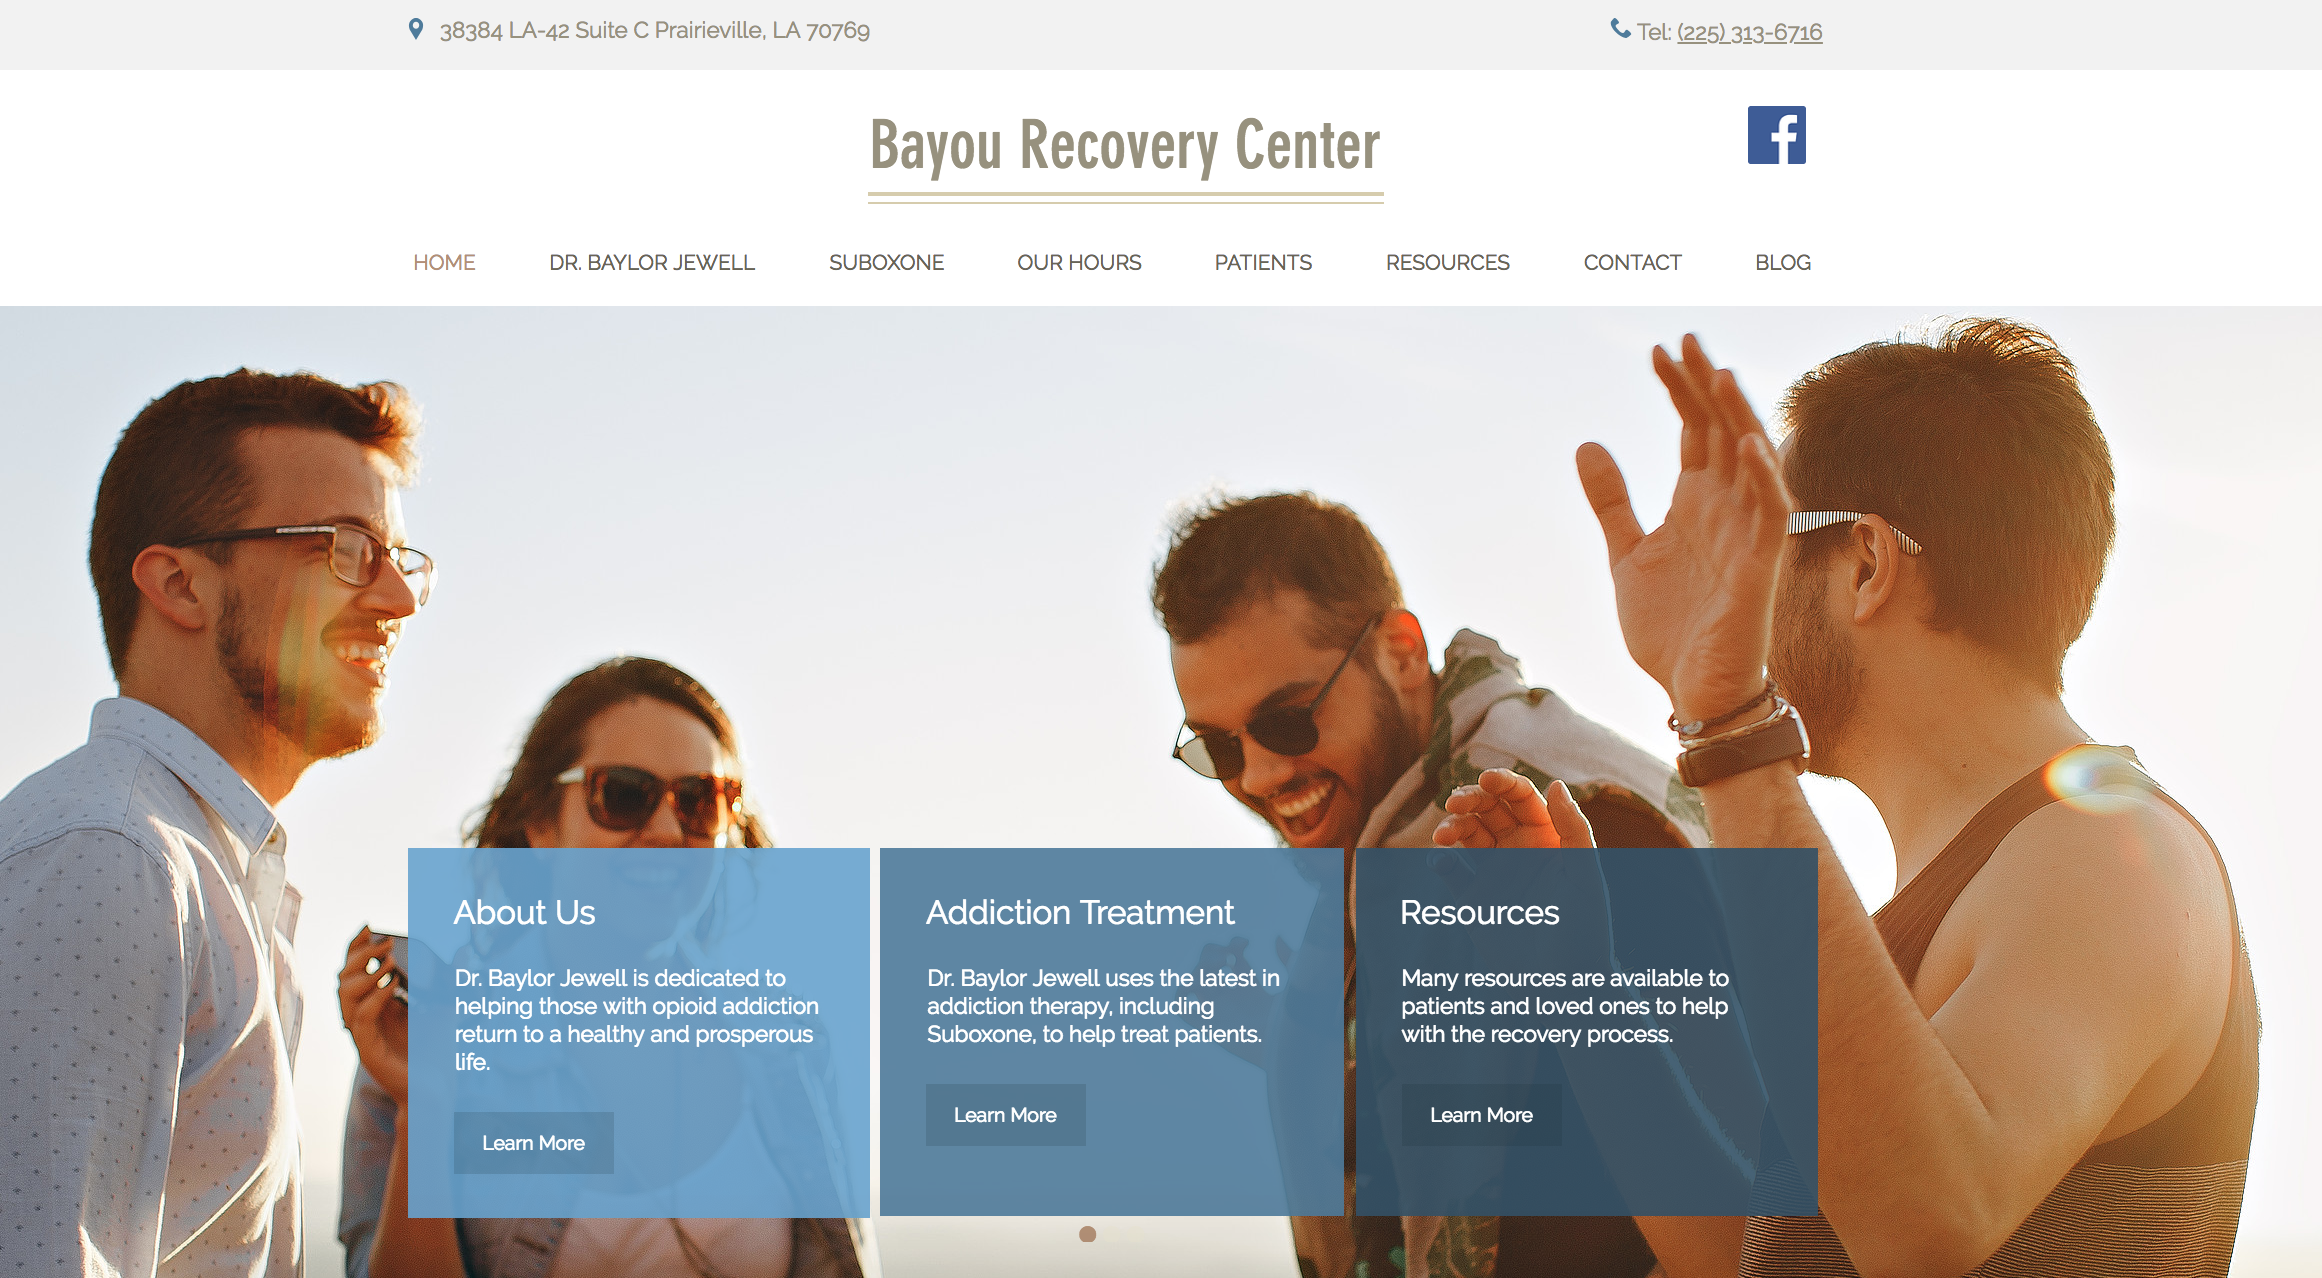 Bayou Recovery Center